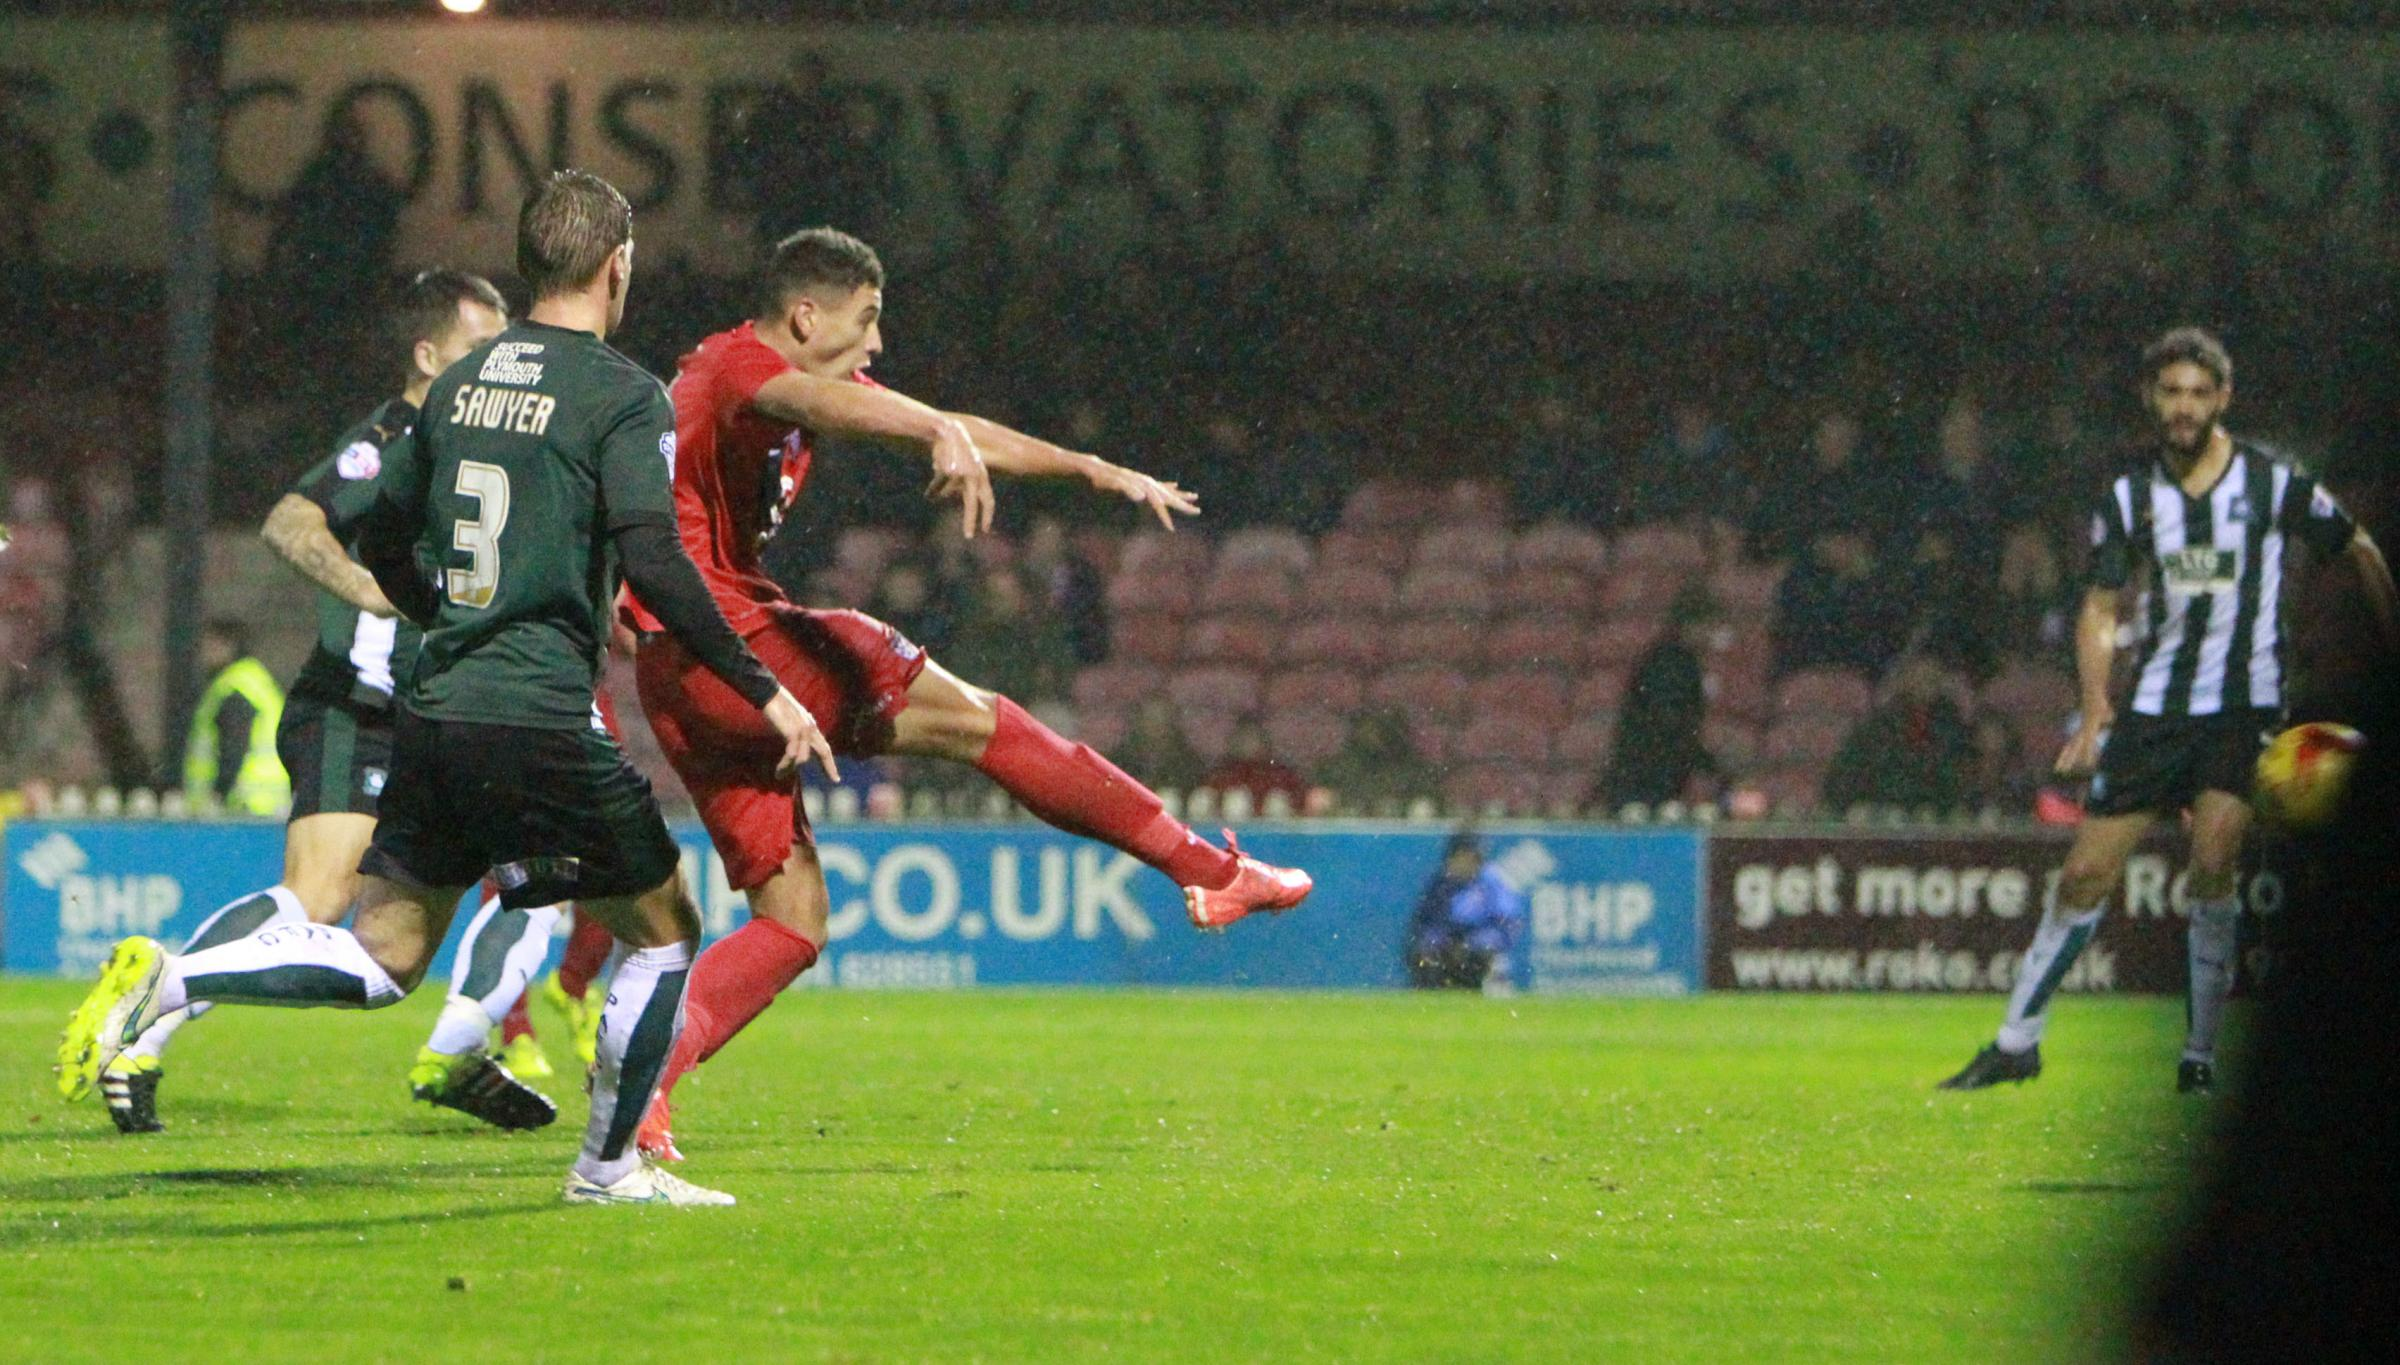 GOAL-DEN BOY: Ex-Archbishop Holgate pupil Ben Godfrey, pictured scoring his only goal for York City against Plymouth, has received a call-up to the England under-20 squad